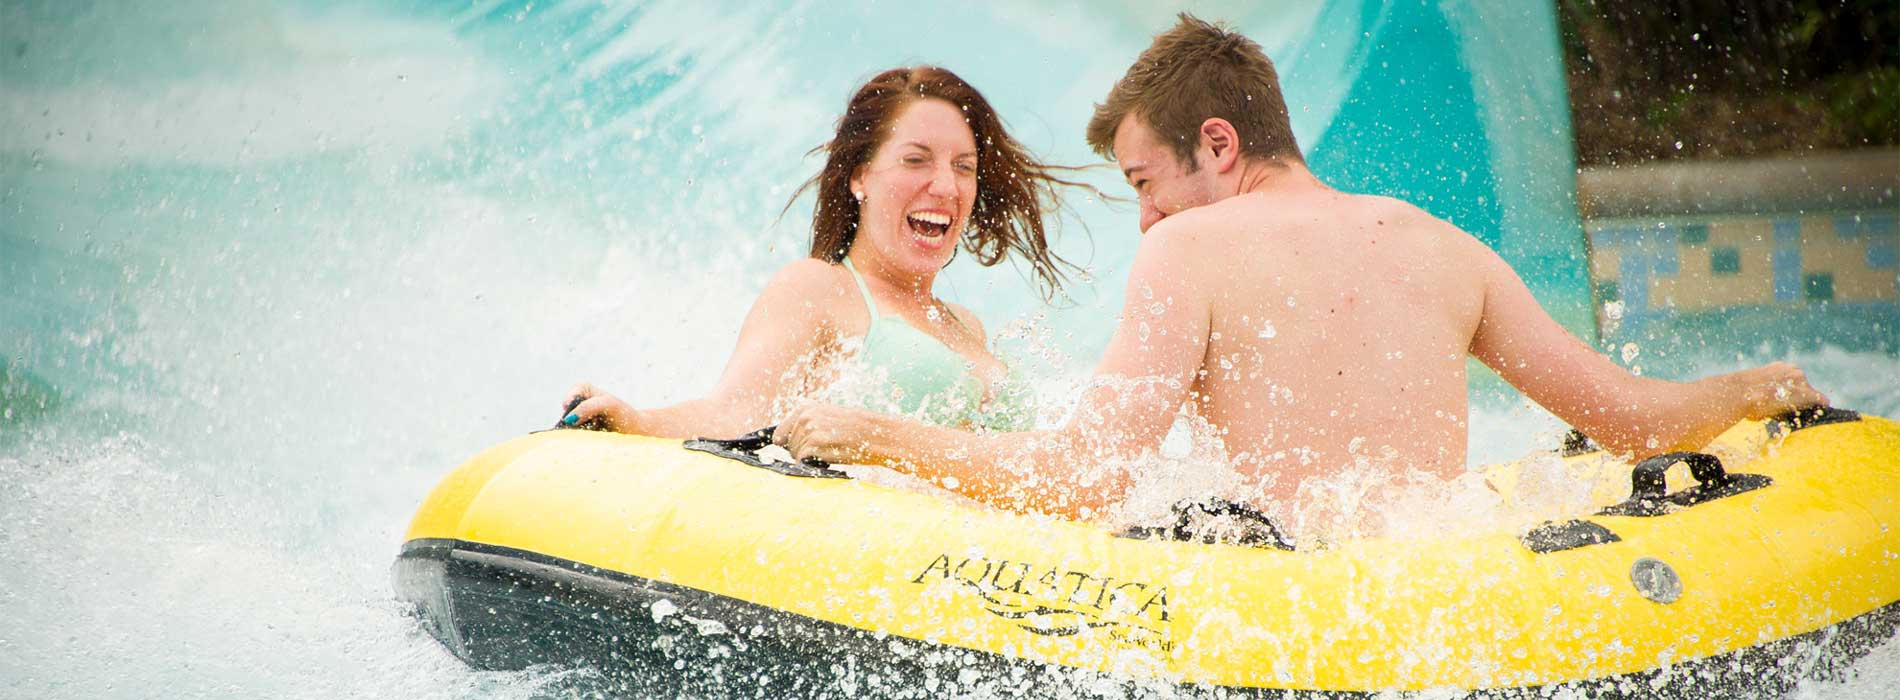 Take a thrilling trip with your family down Wahalla Wave at Aquatica.